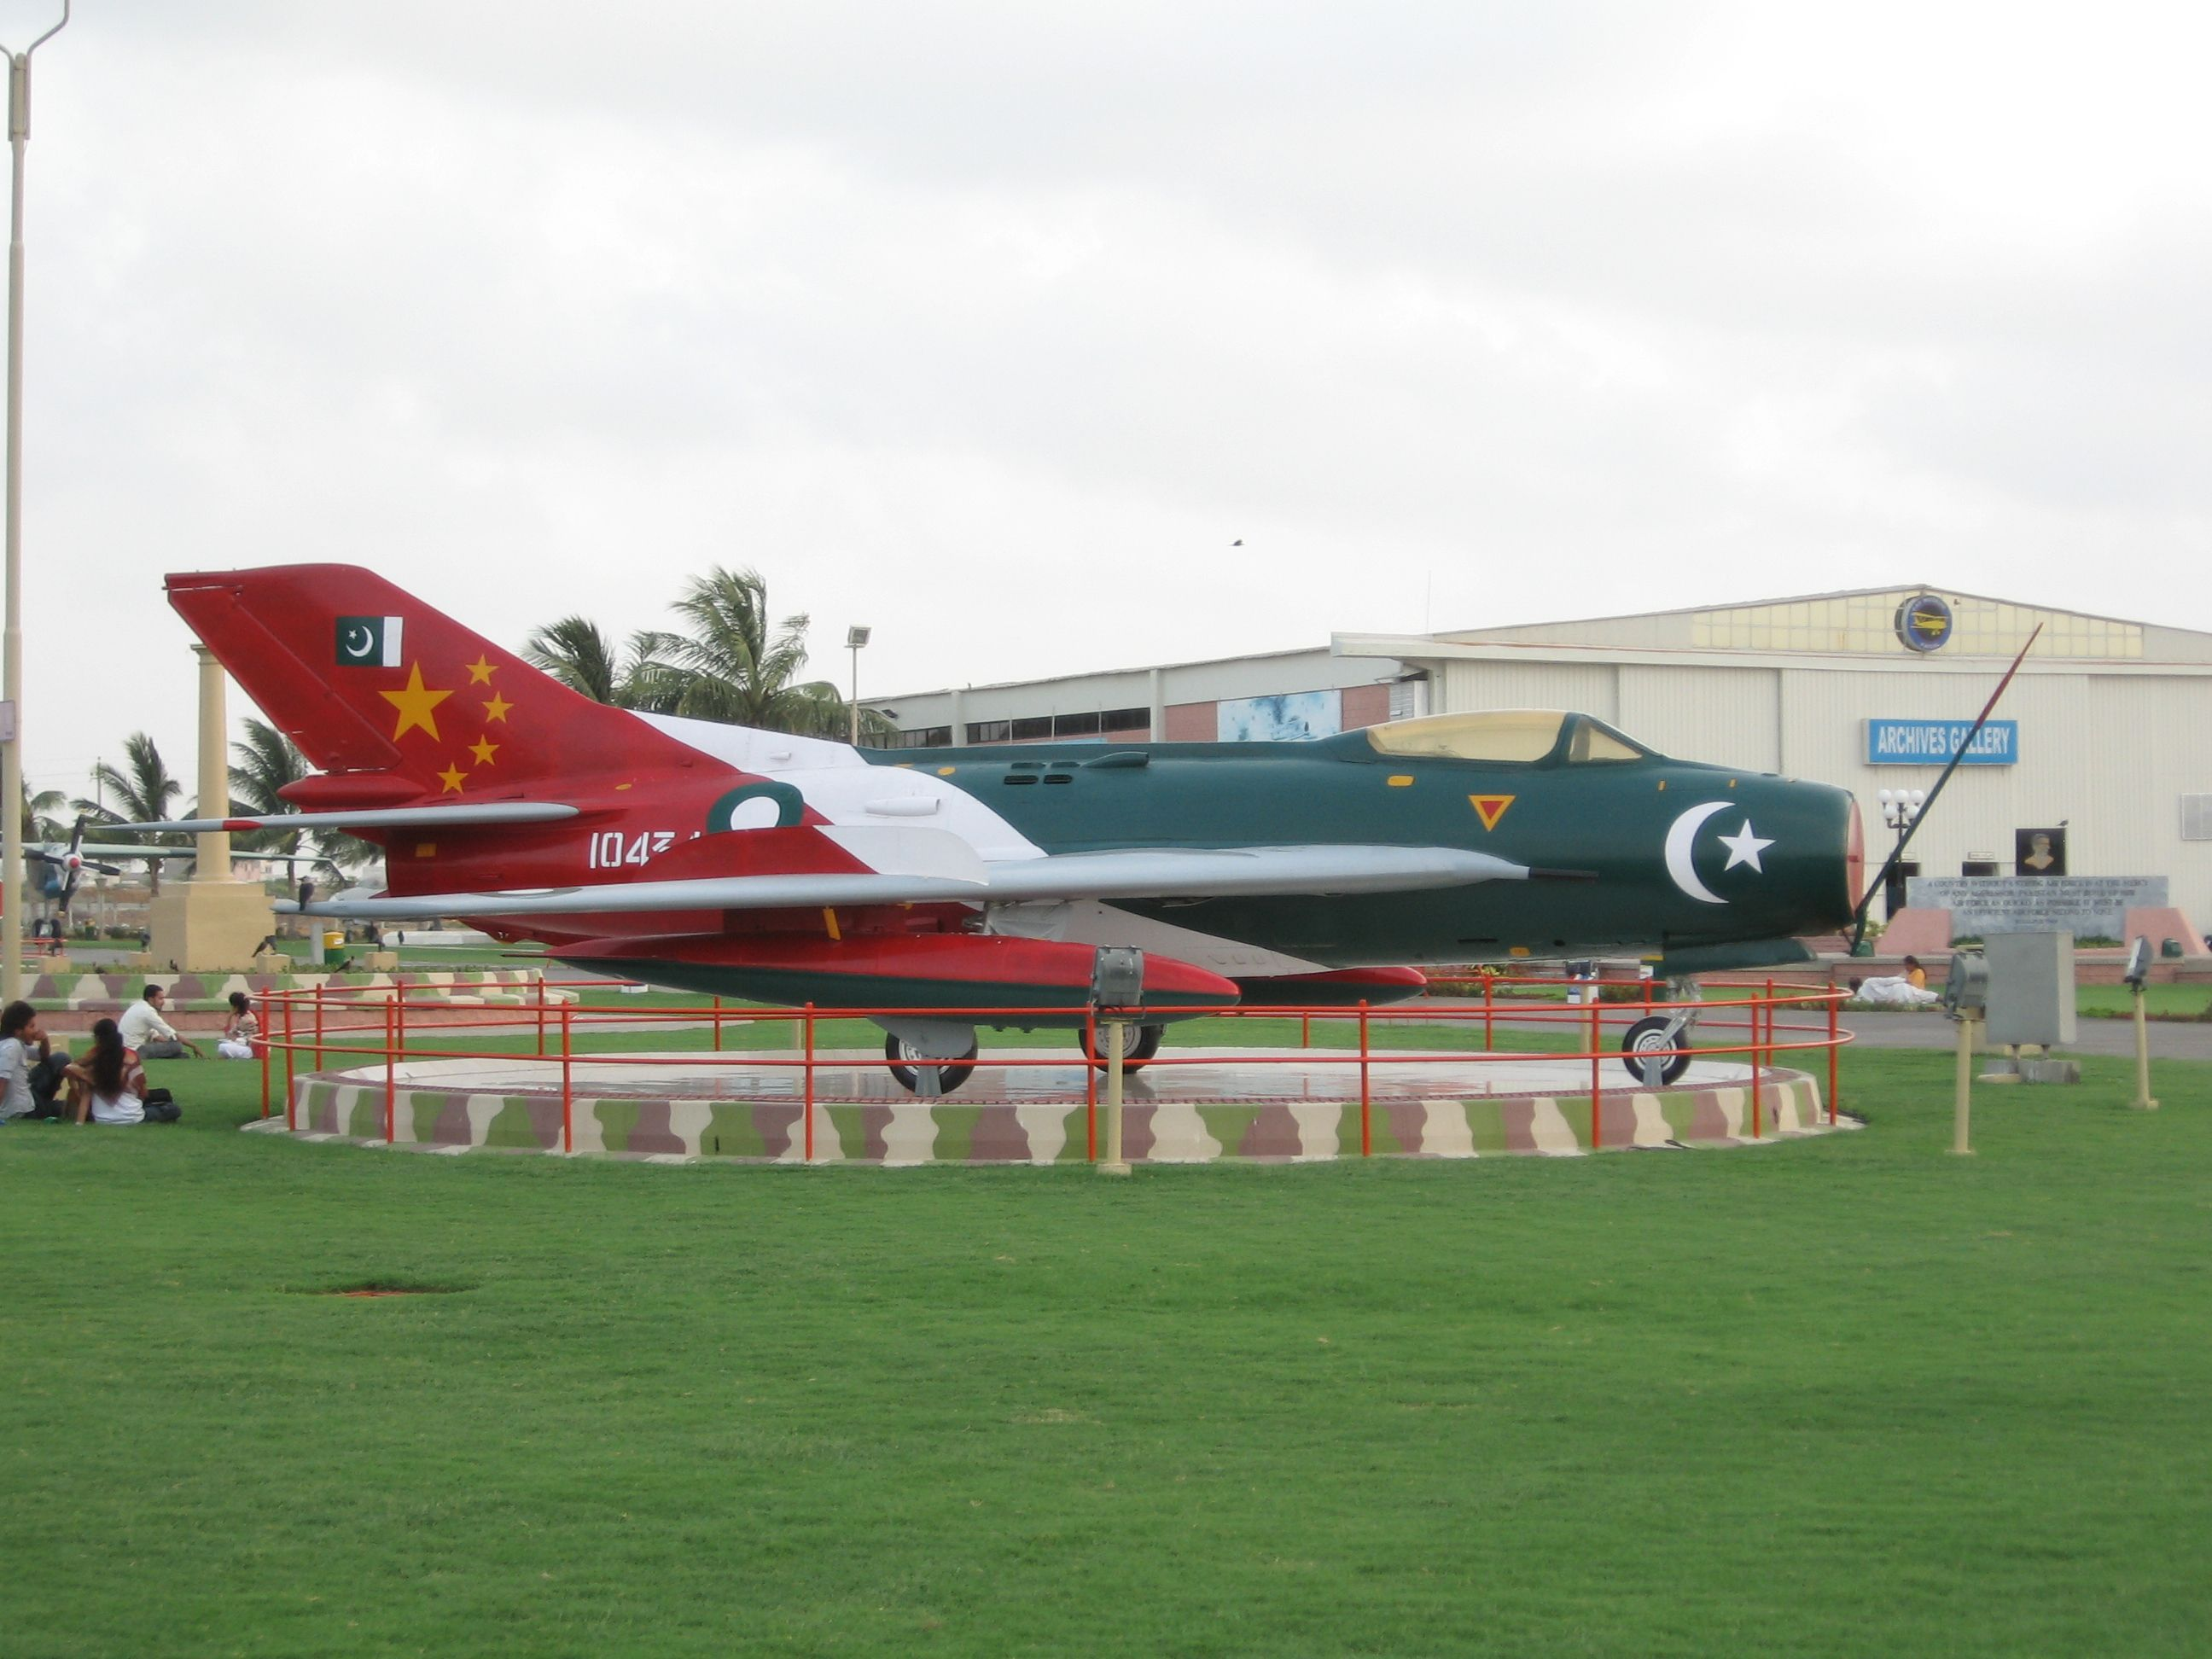 Pakistani Air Force F6 Aircraft at PAF Museum, Karachi